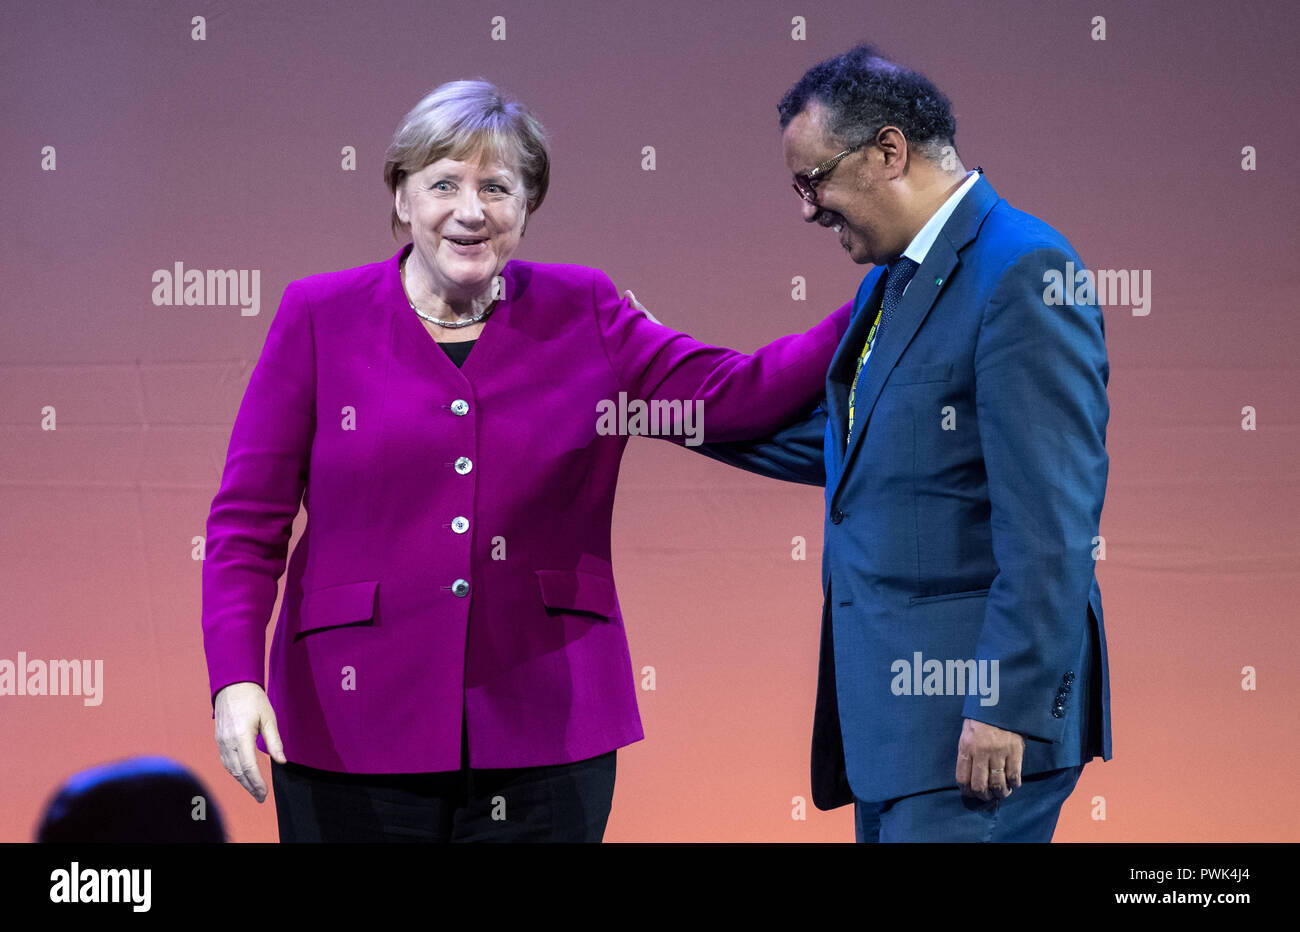 Berlin, Germany. 16 October 2018, Berlin: 16 October 2018, Germany, Berlin:Chancellor Angela Merkel (CDU) and Tedros Adhanom Ghebreyesus, Director General of the World Health Organization (WHO), will be on stage at the closing event of the World Health Summit 2018. Around 2,000 participants and 300 speakers from 100 countries discussed pressing issues of global health care and the prevention of preventable diseases at the three-day event. Photo: Bernd von Jutrczenka/dpa Credit: dpa picture alliance/Alamy Live News - Stock Image